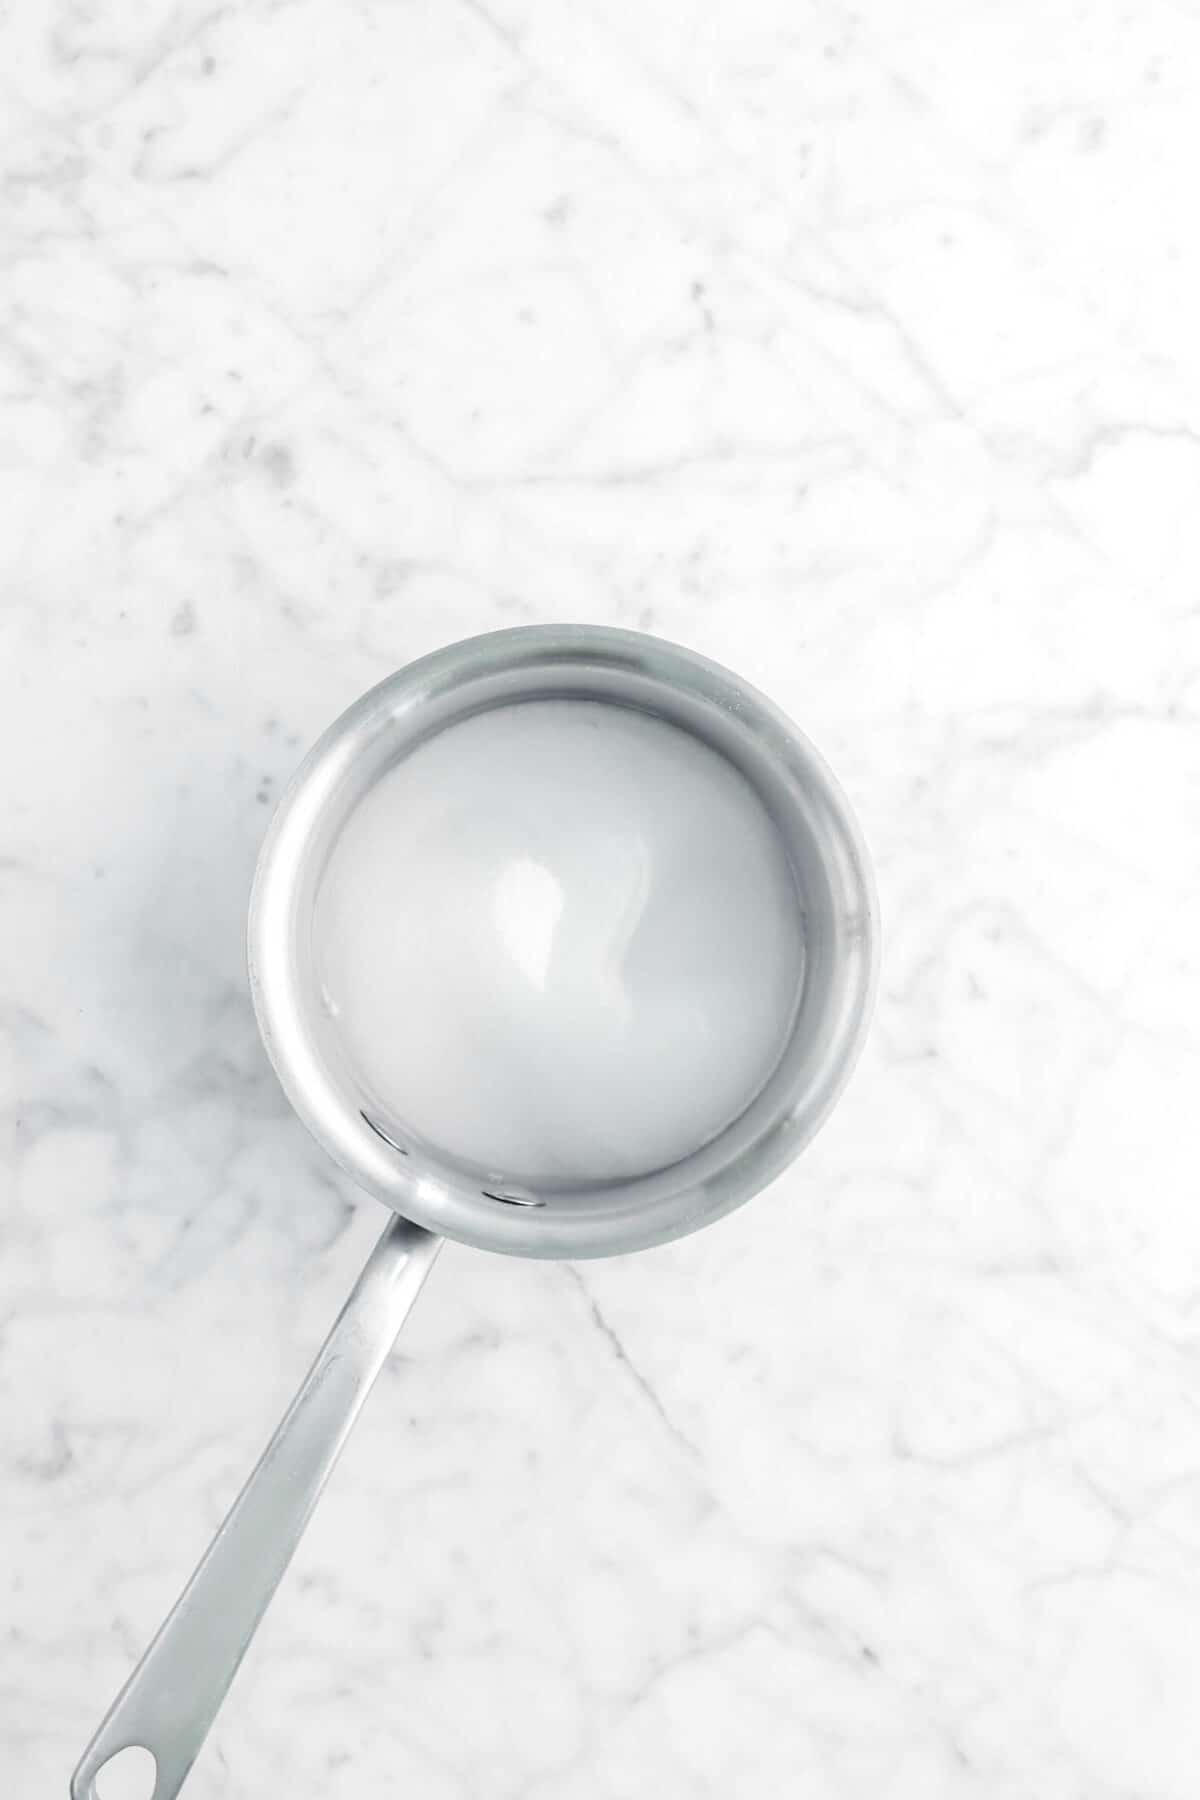 sugar and water in small pot